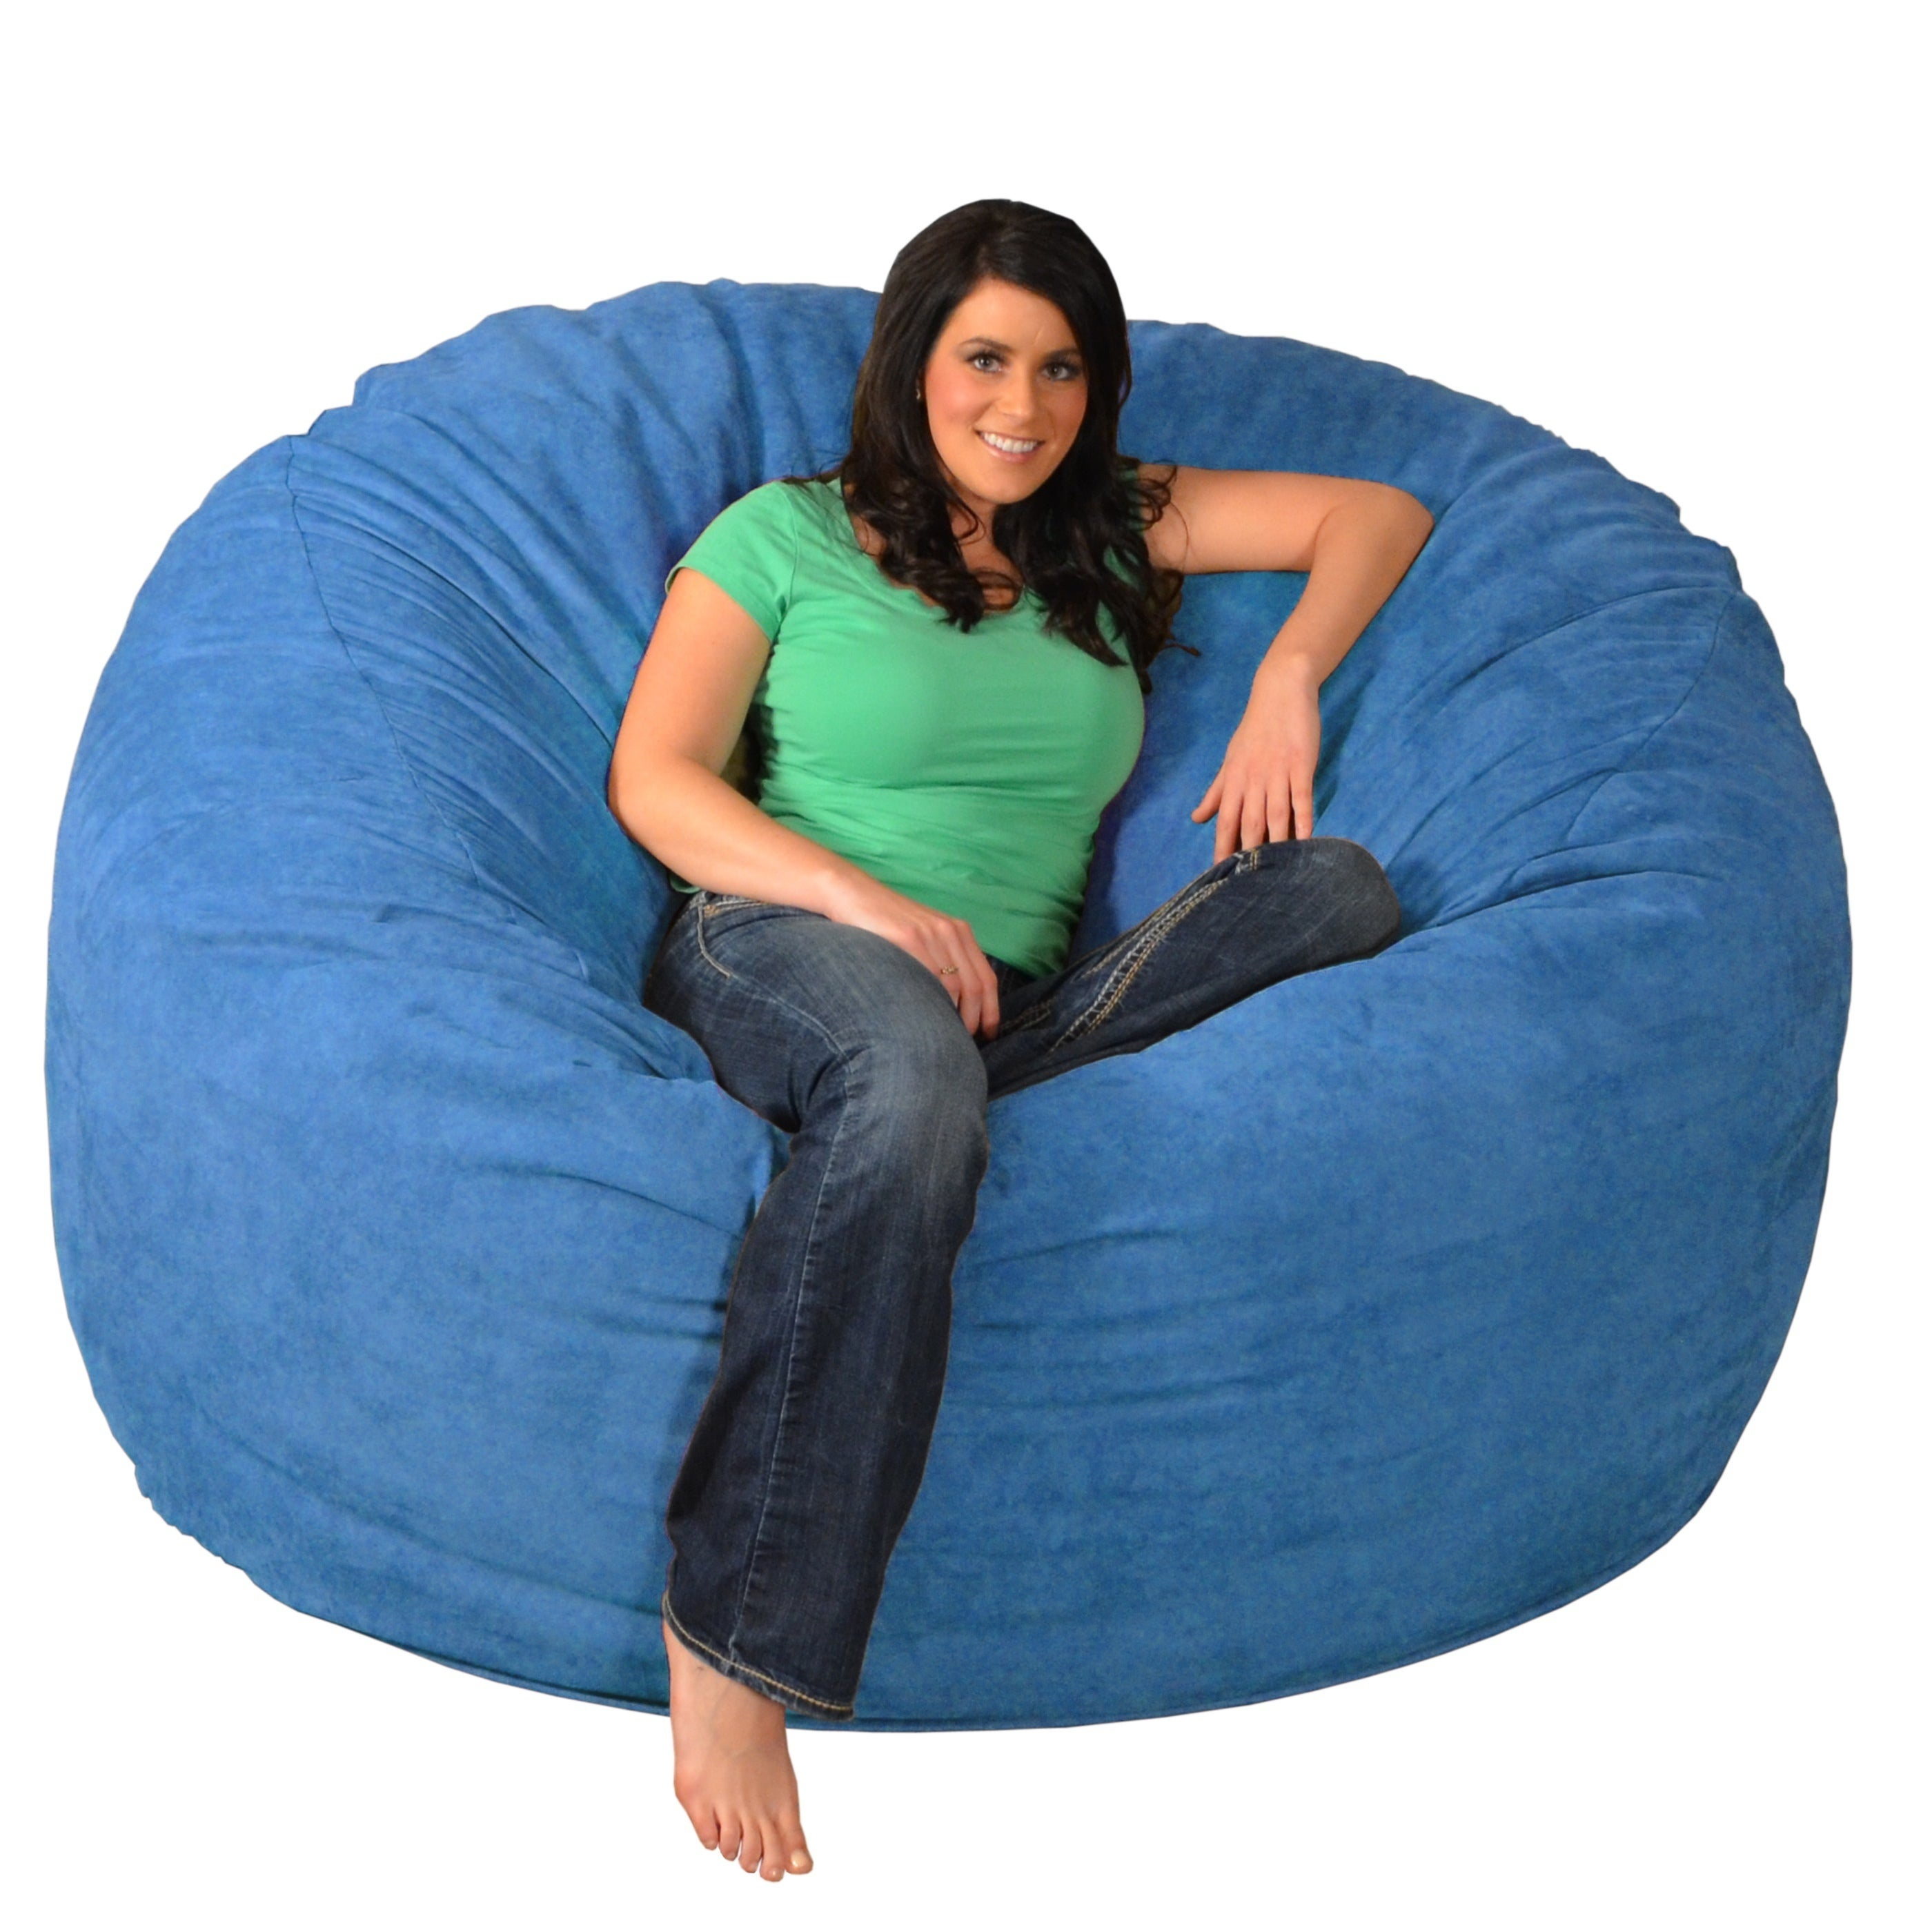 Pleasing Giant Memory Foam Bean Bag 6 Foot Chair Unemploymentrelief Wooden Chair Designs For Living Room Unemploymentrelieforg